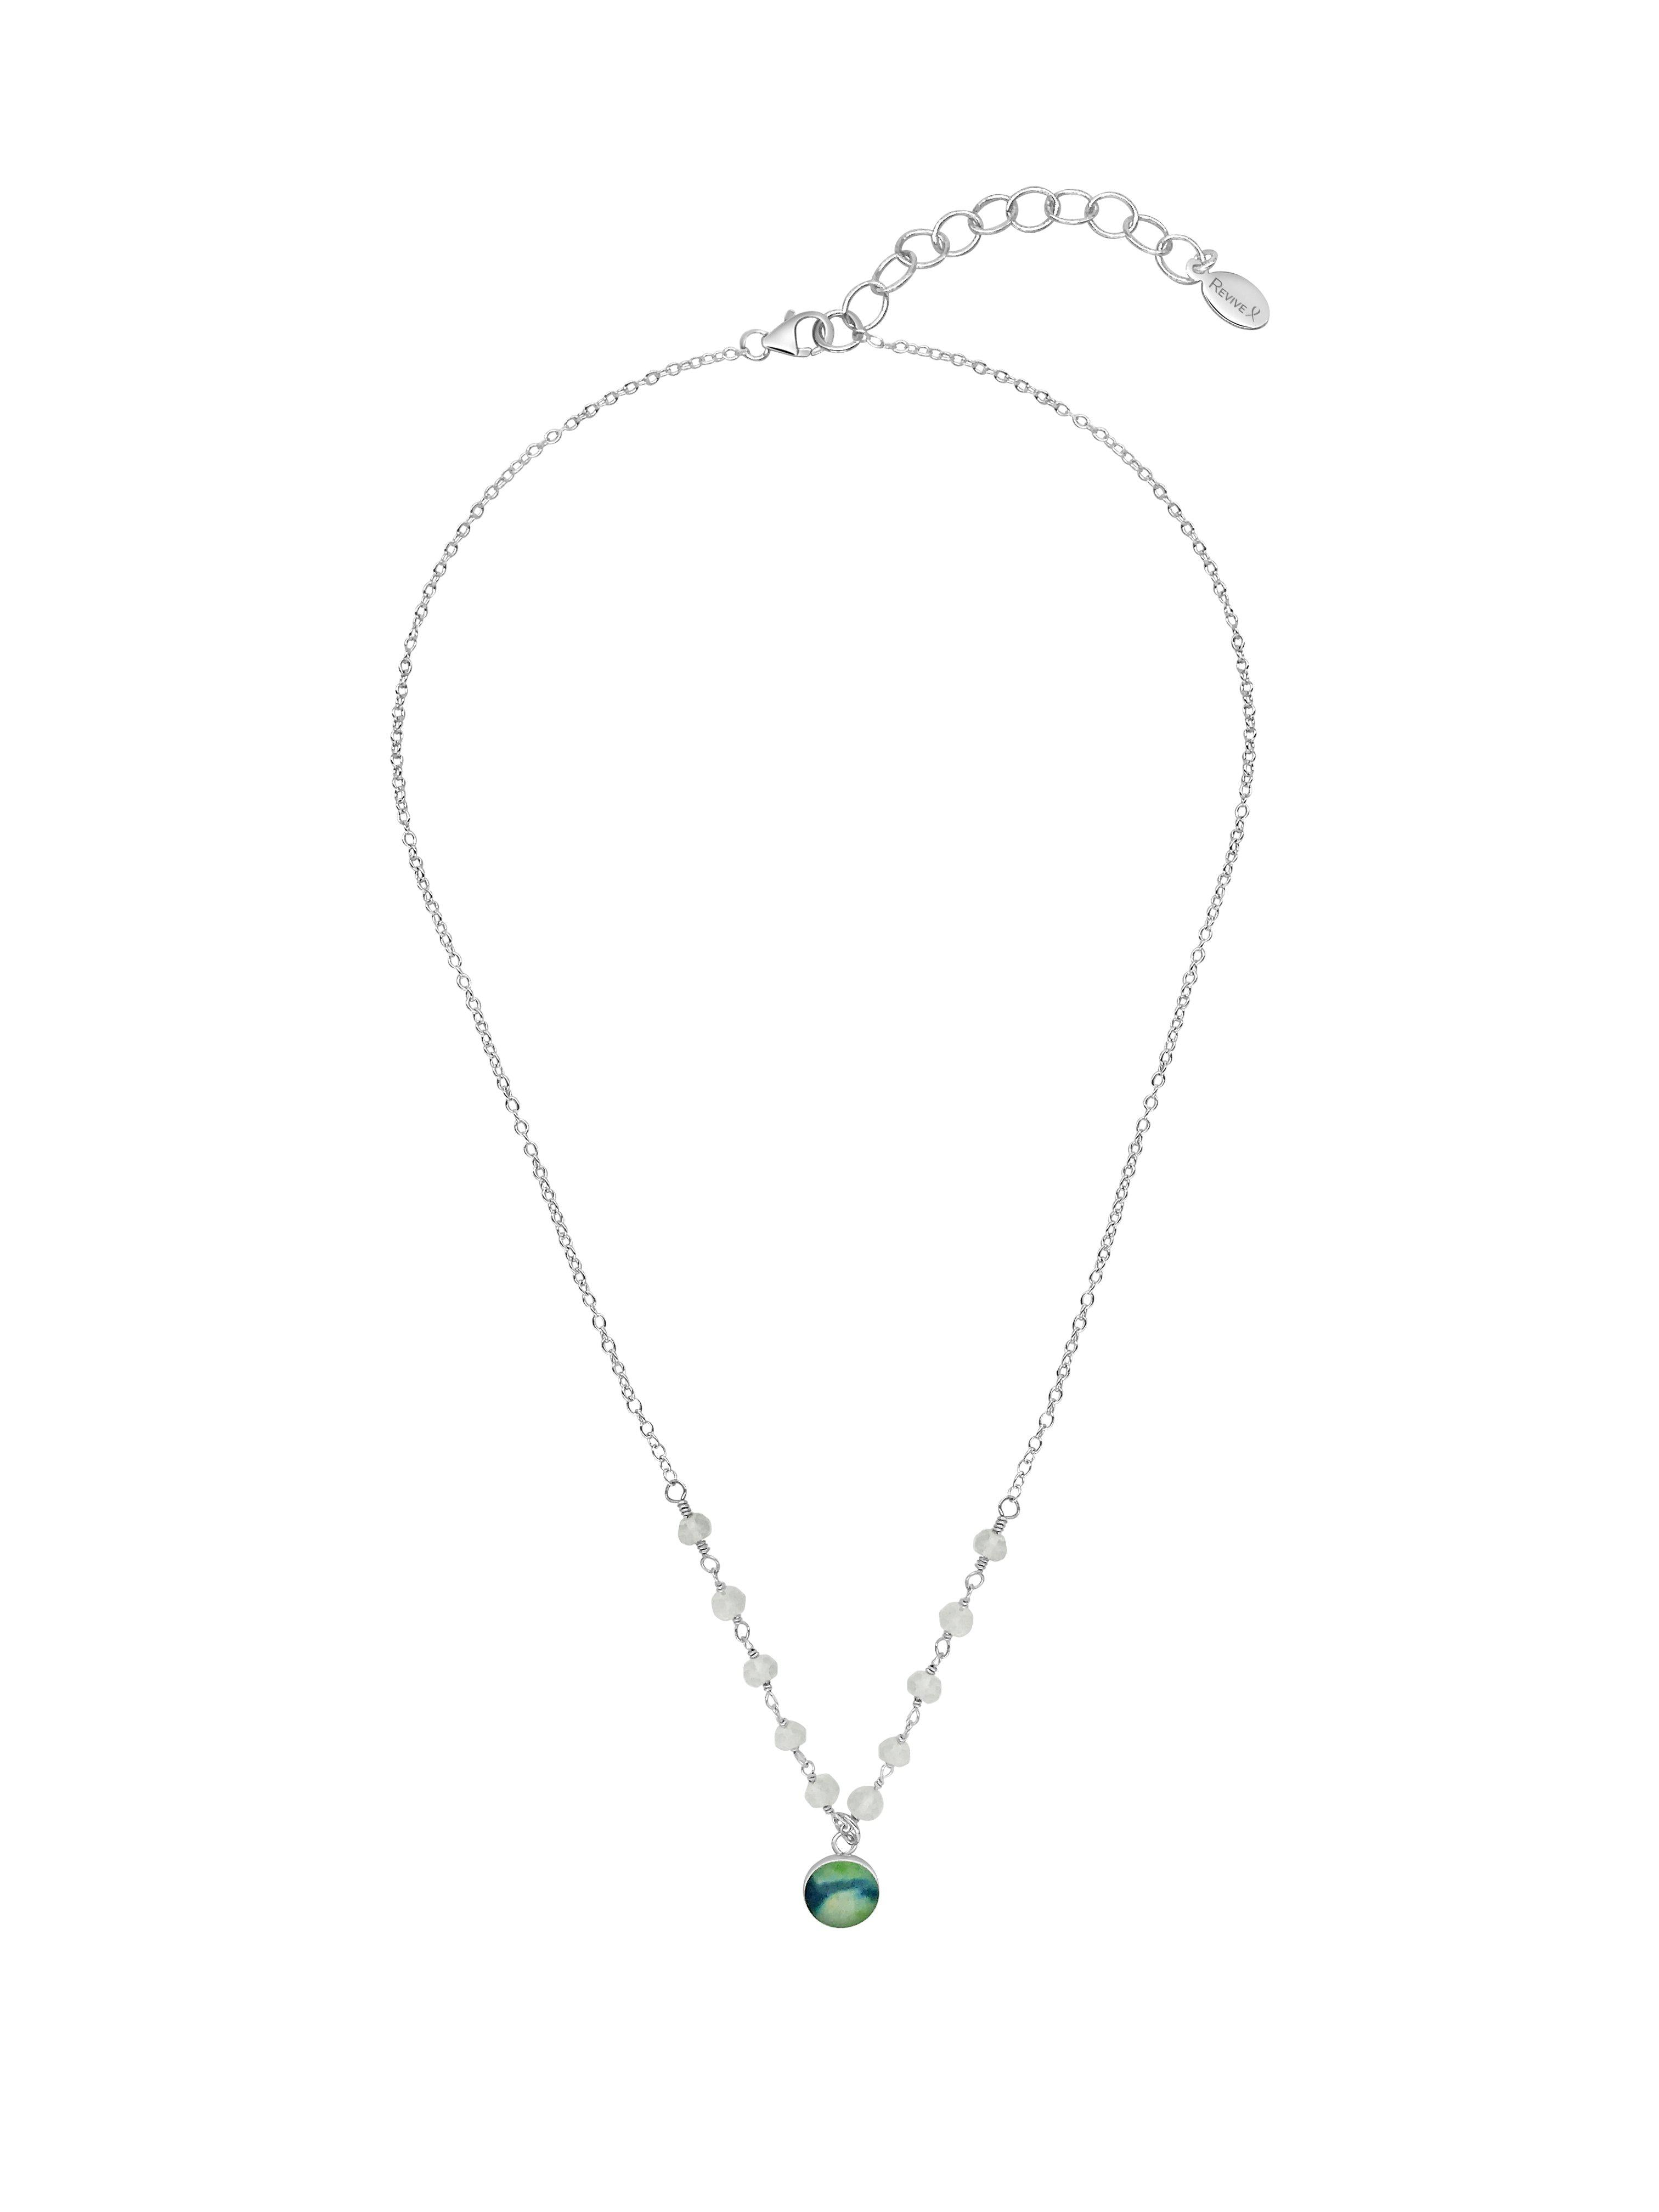 Sterling Silver Necklace With Green Stones 16 Inches Adjustable